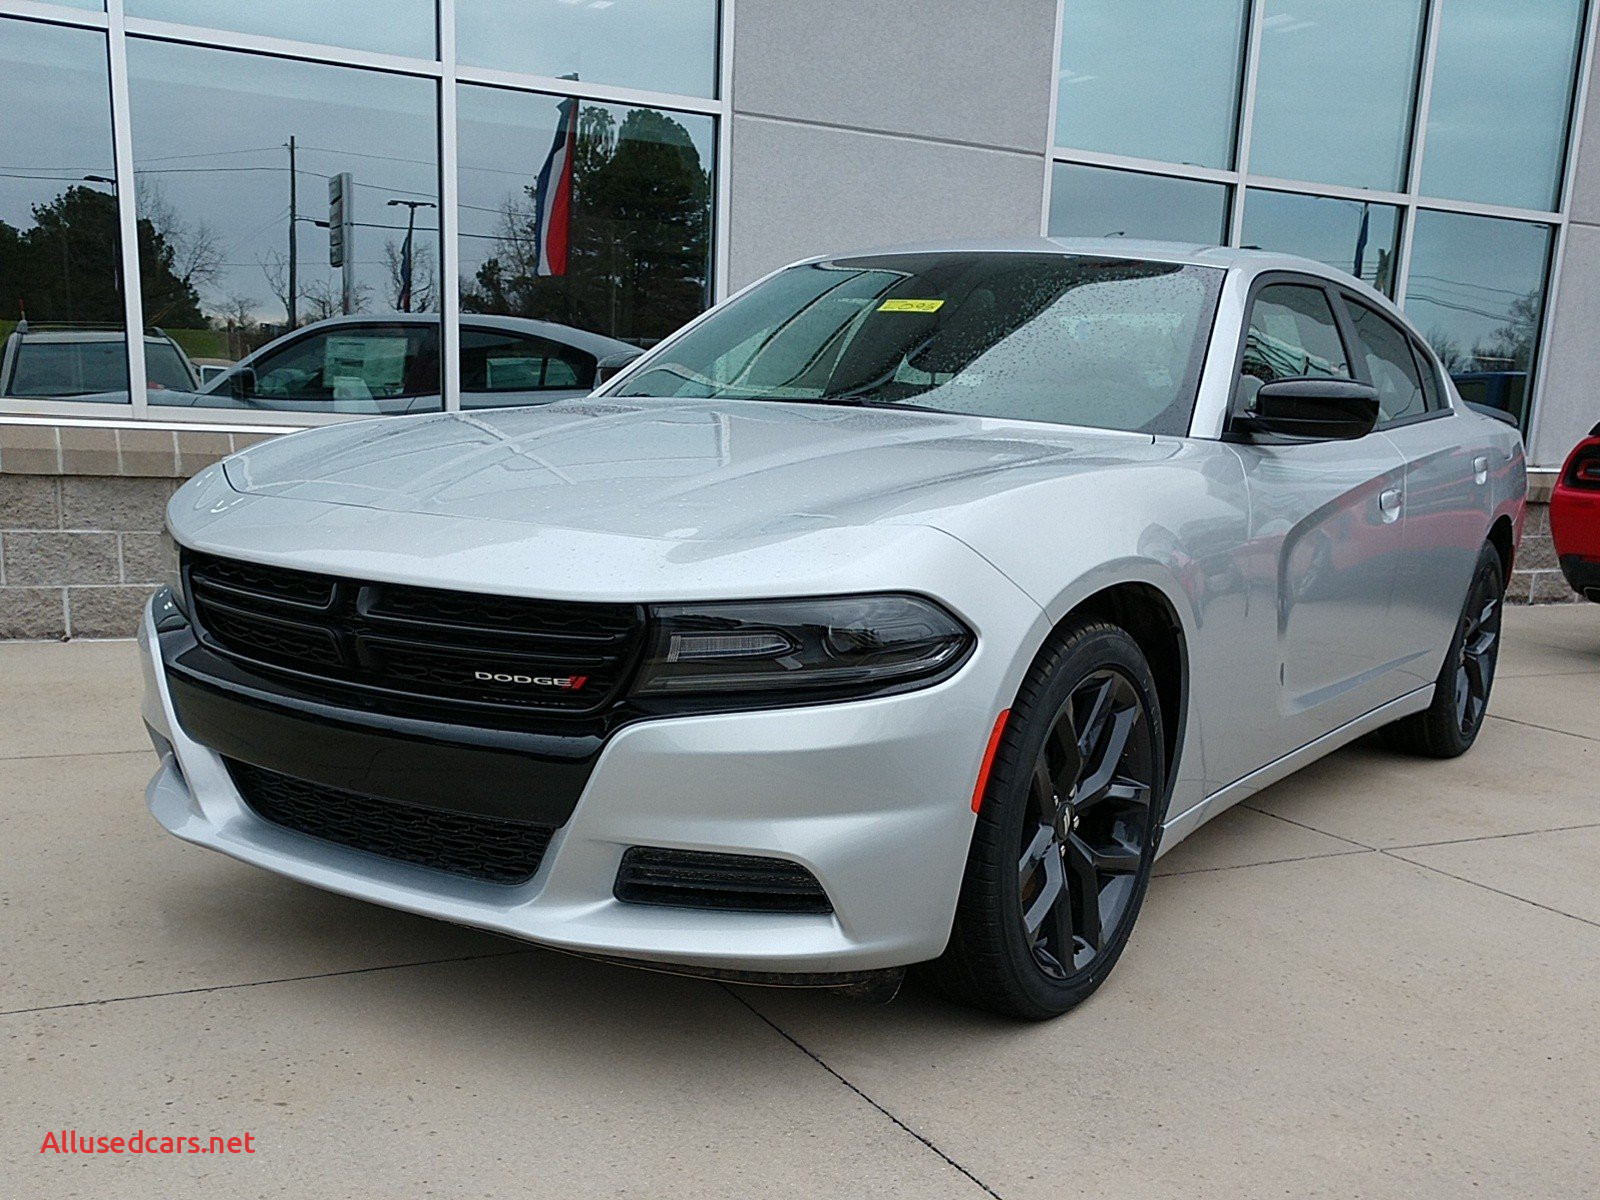 2018 Dodge Charger Sxt Fresh New 2020 Dodge Charger Sxt Rwd